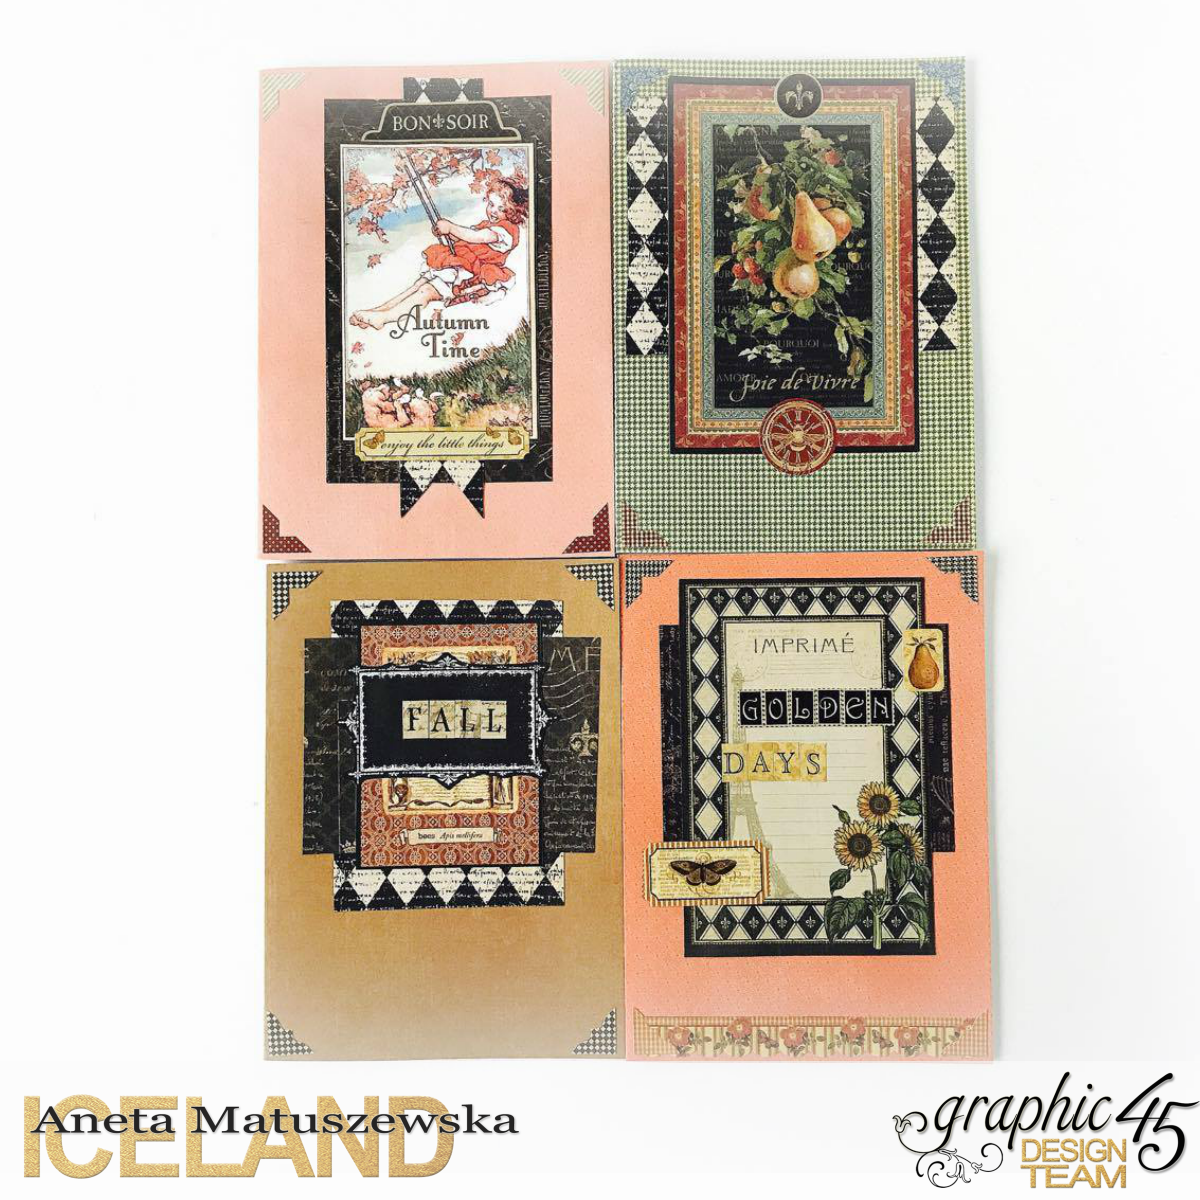 Autumn handmade notebooks for G45, by Aneta Matuszewska, photo 5.png